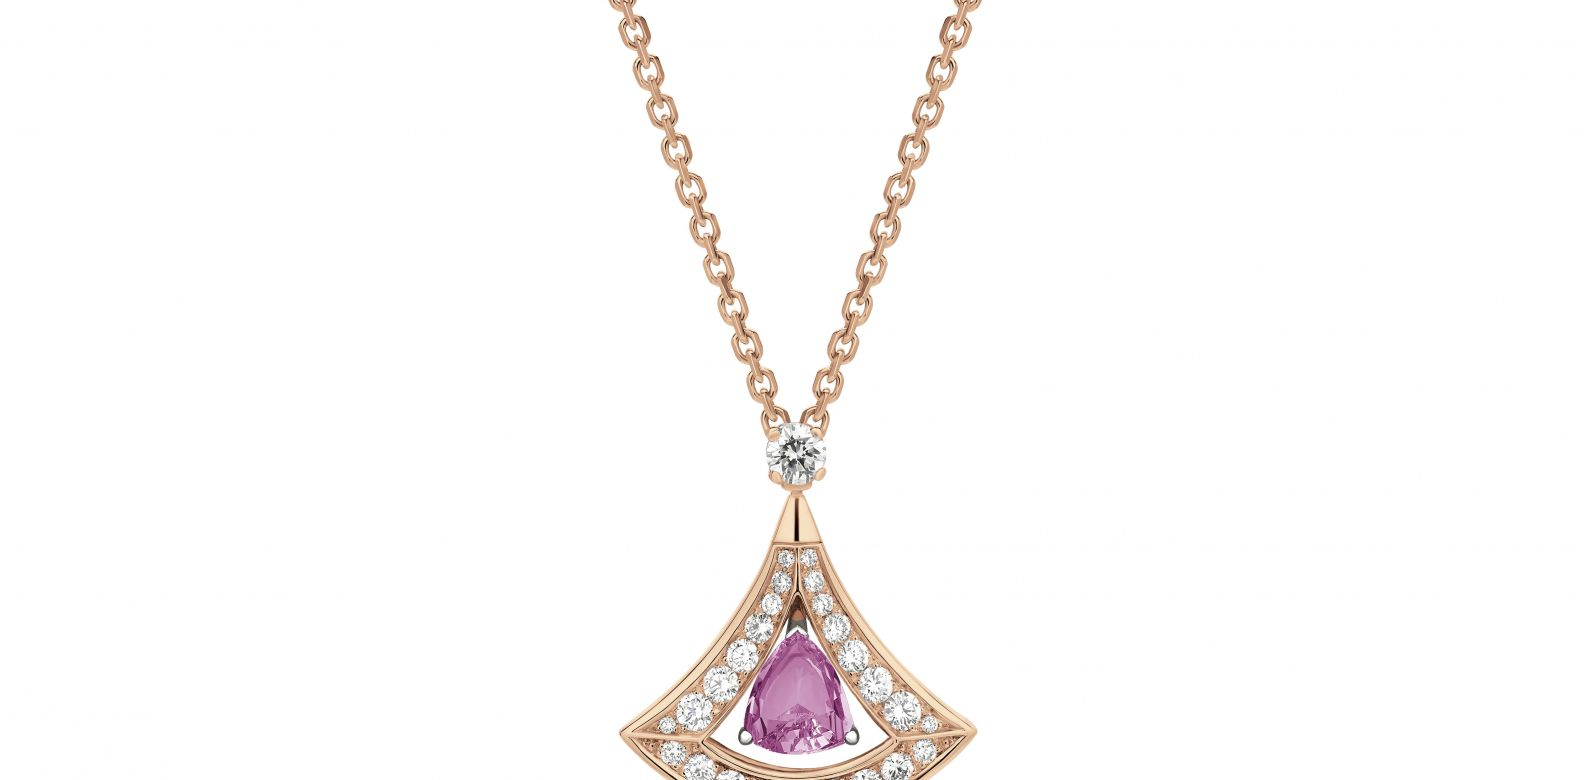 Necklace in pink gold with pink tourmaline and diamonds (1.18cts)